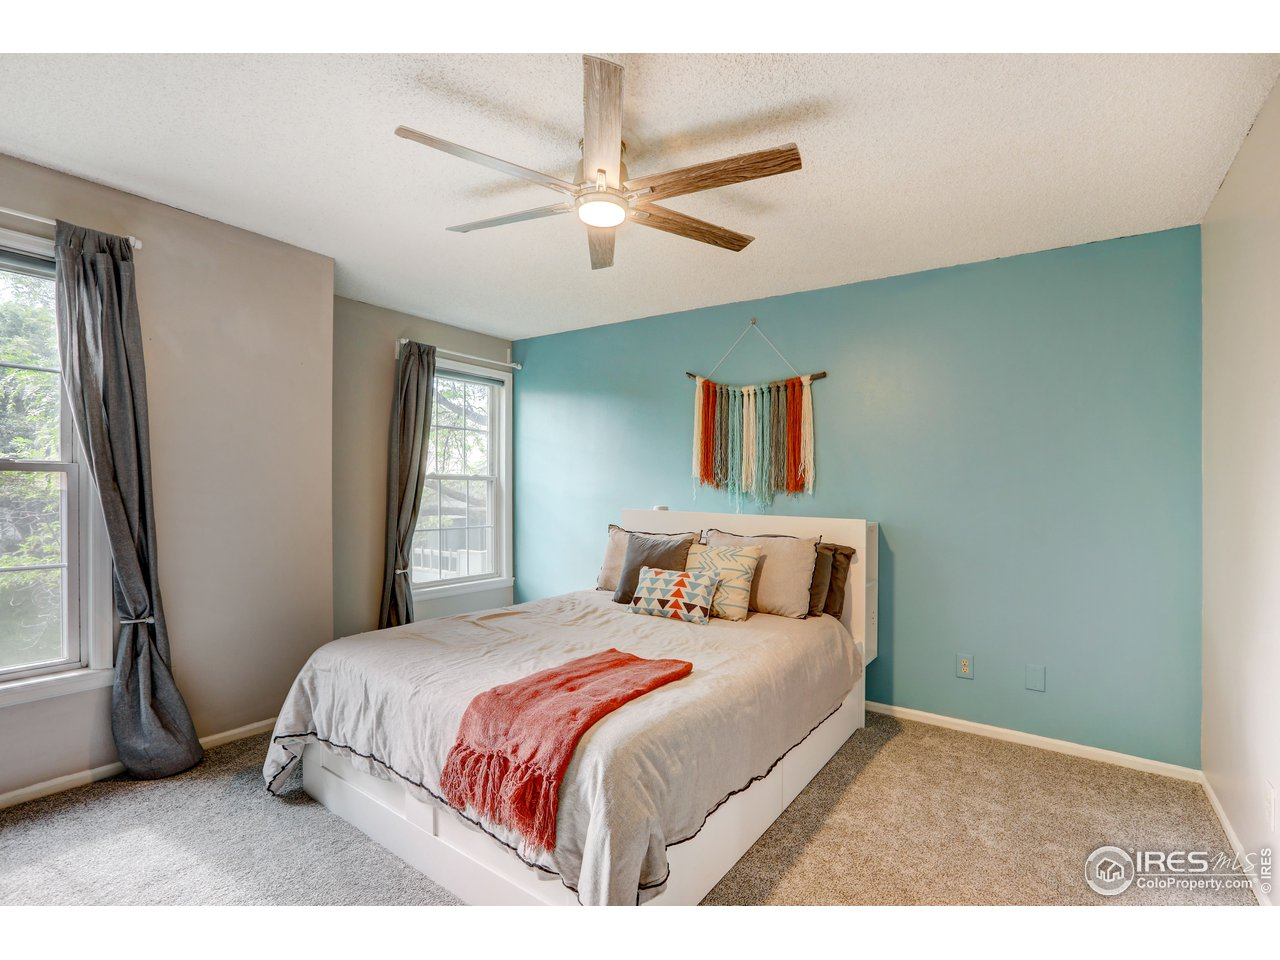 Primary bedroom with new carpet and ceiling fan with remote